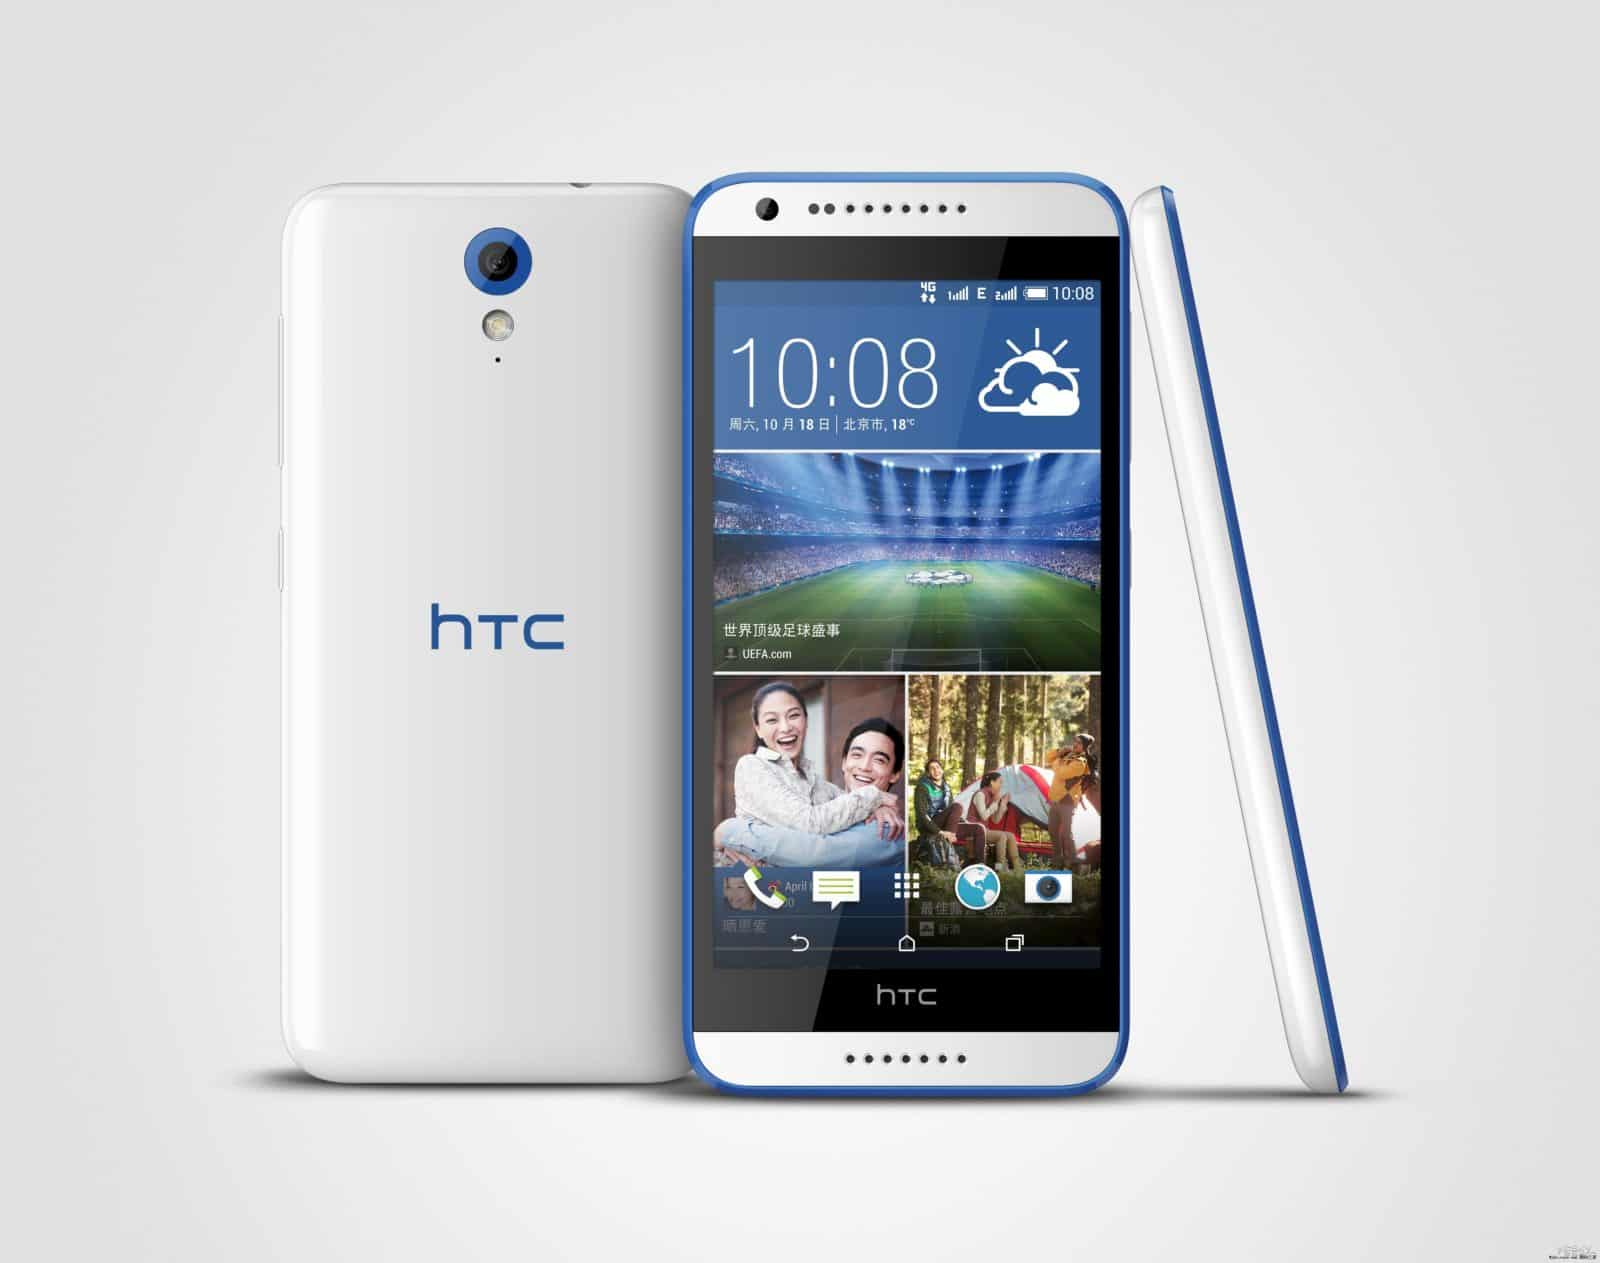 HTC Desire 820 Mini (D820mu) pre-announcement listing_1